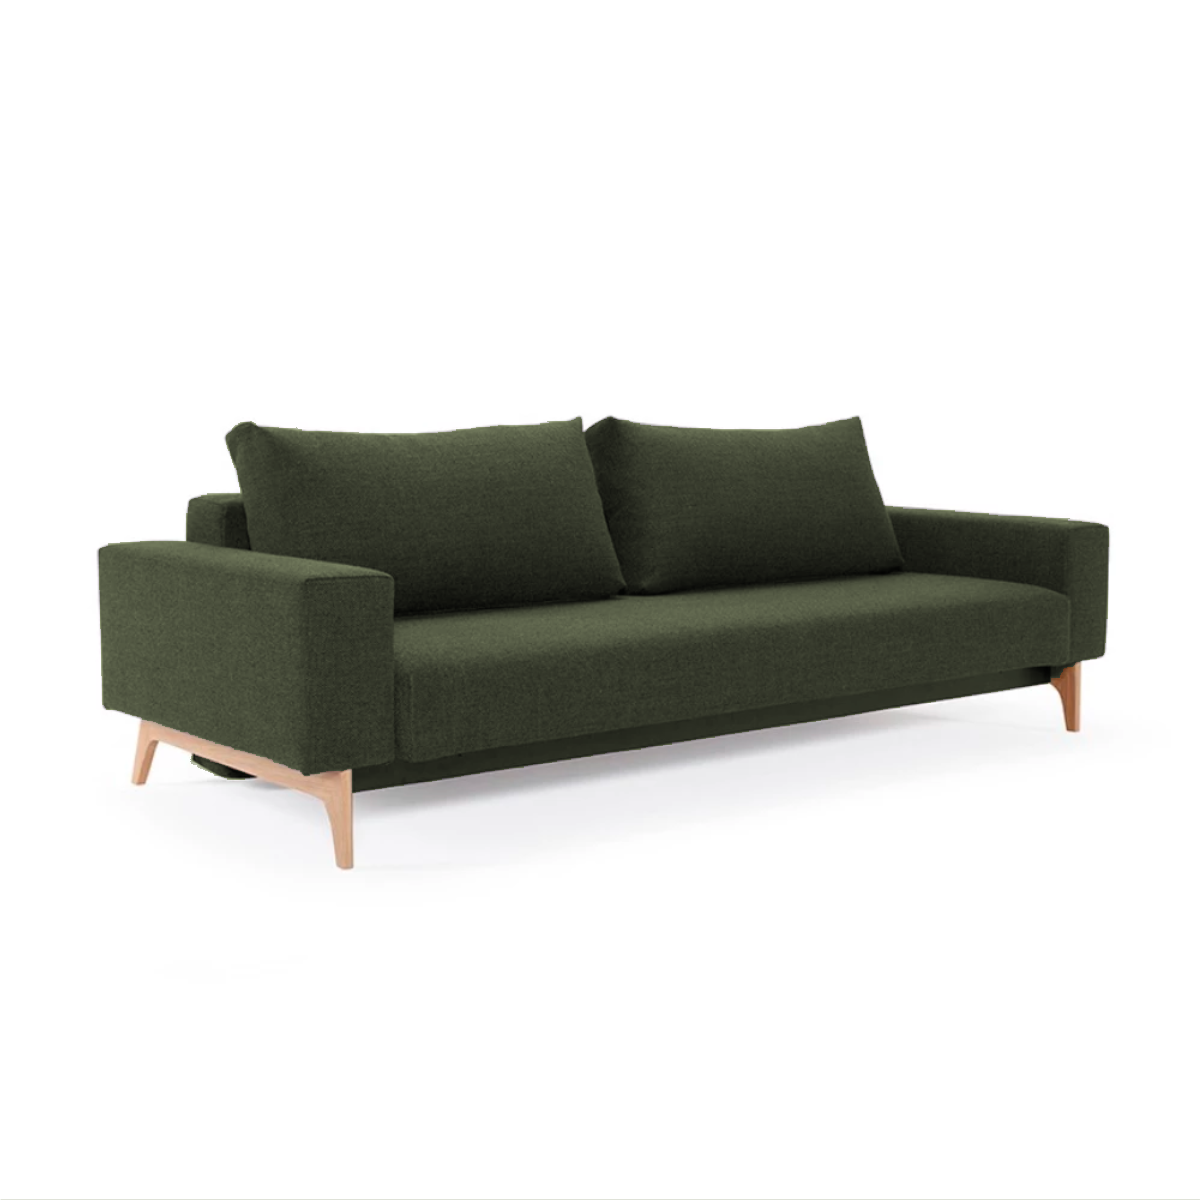 Innovation Living Idun Sofabed with Arms, 562 mixed dance green